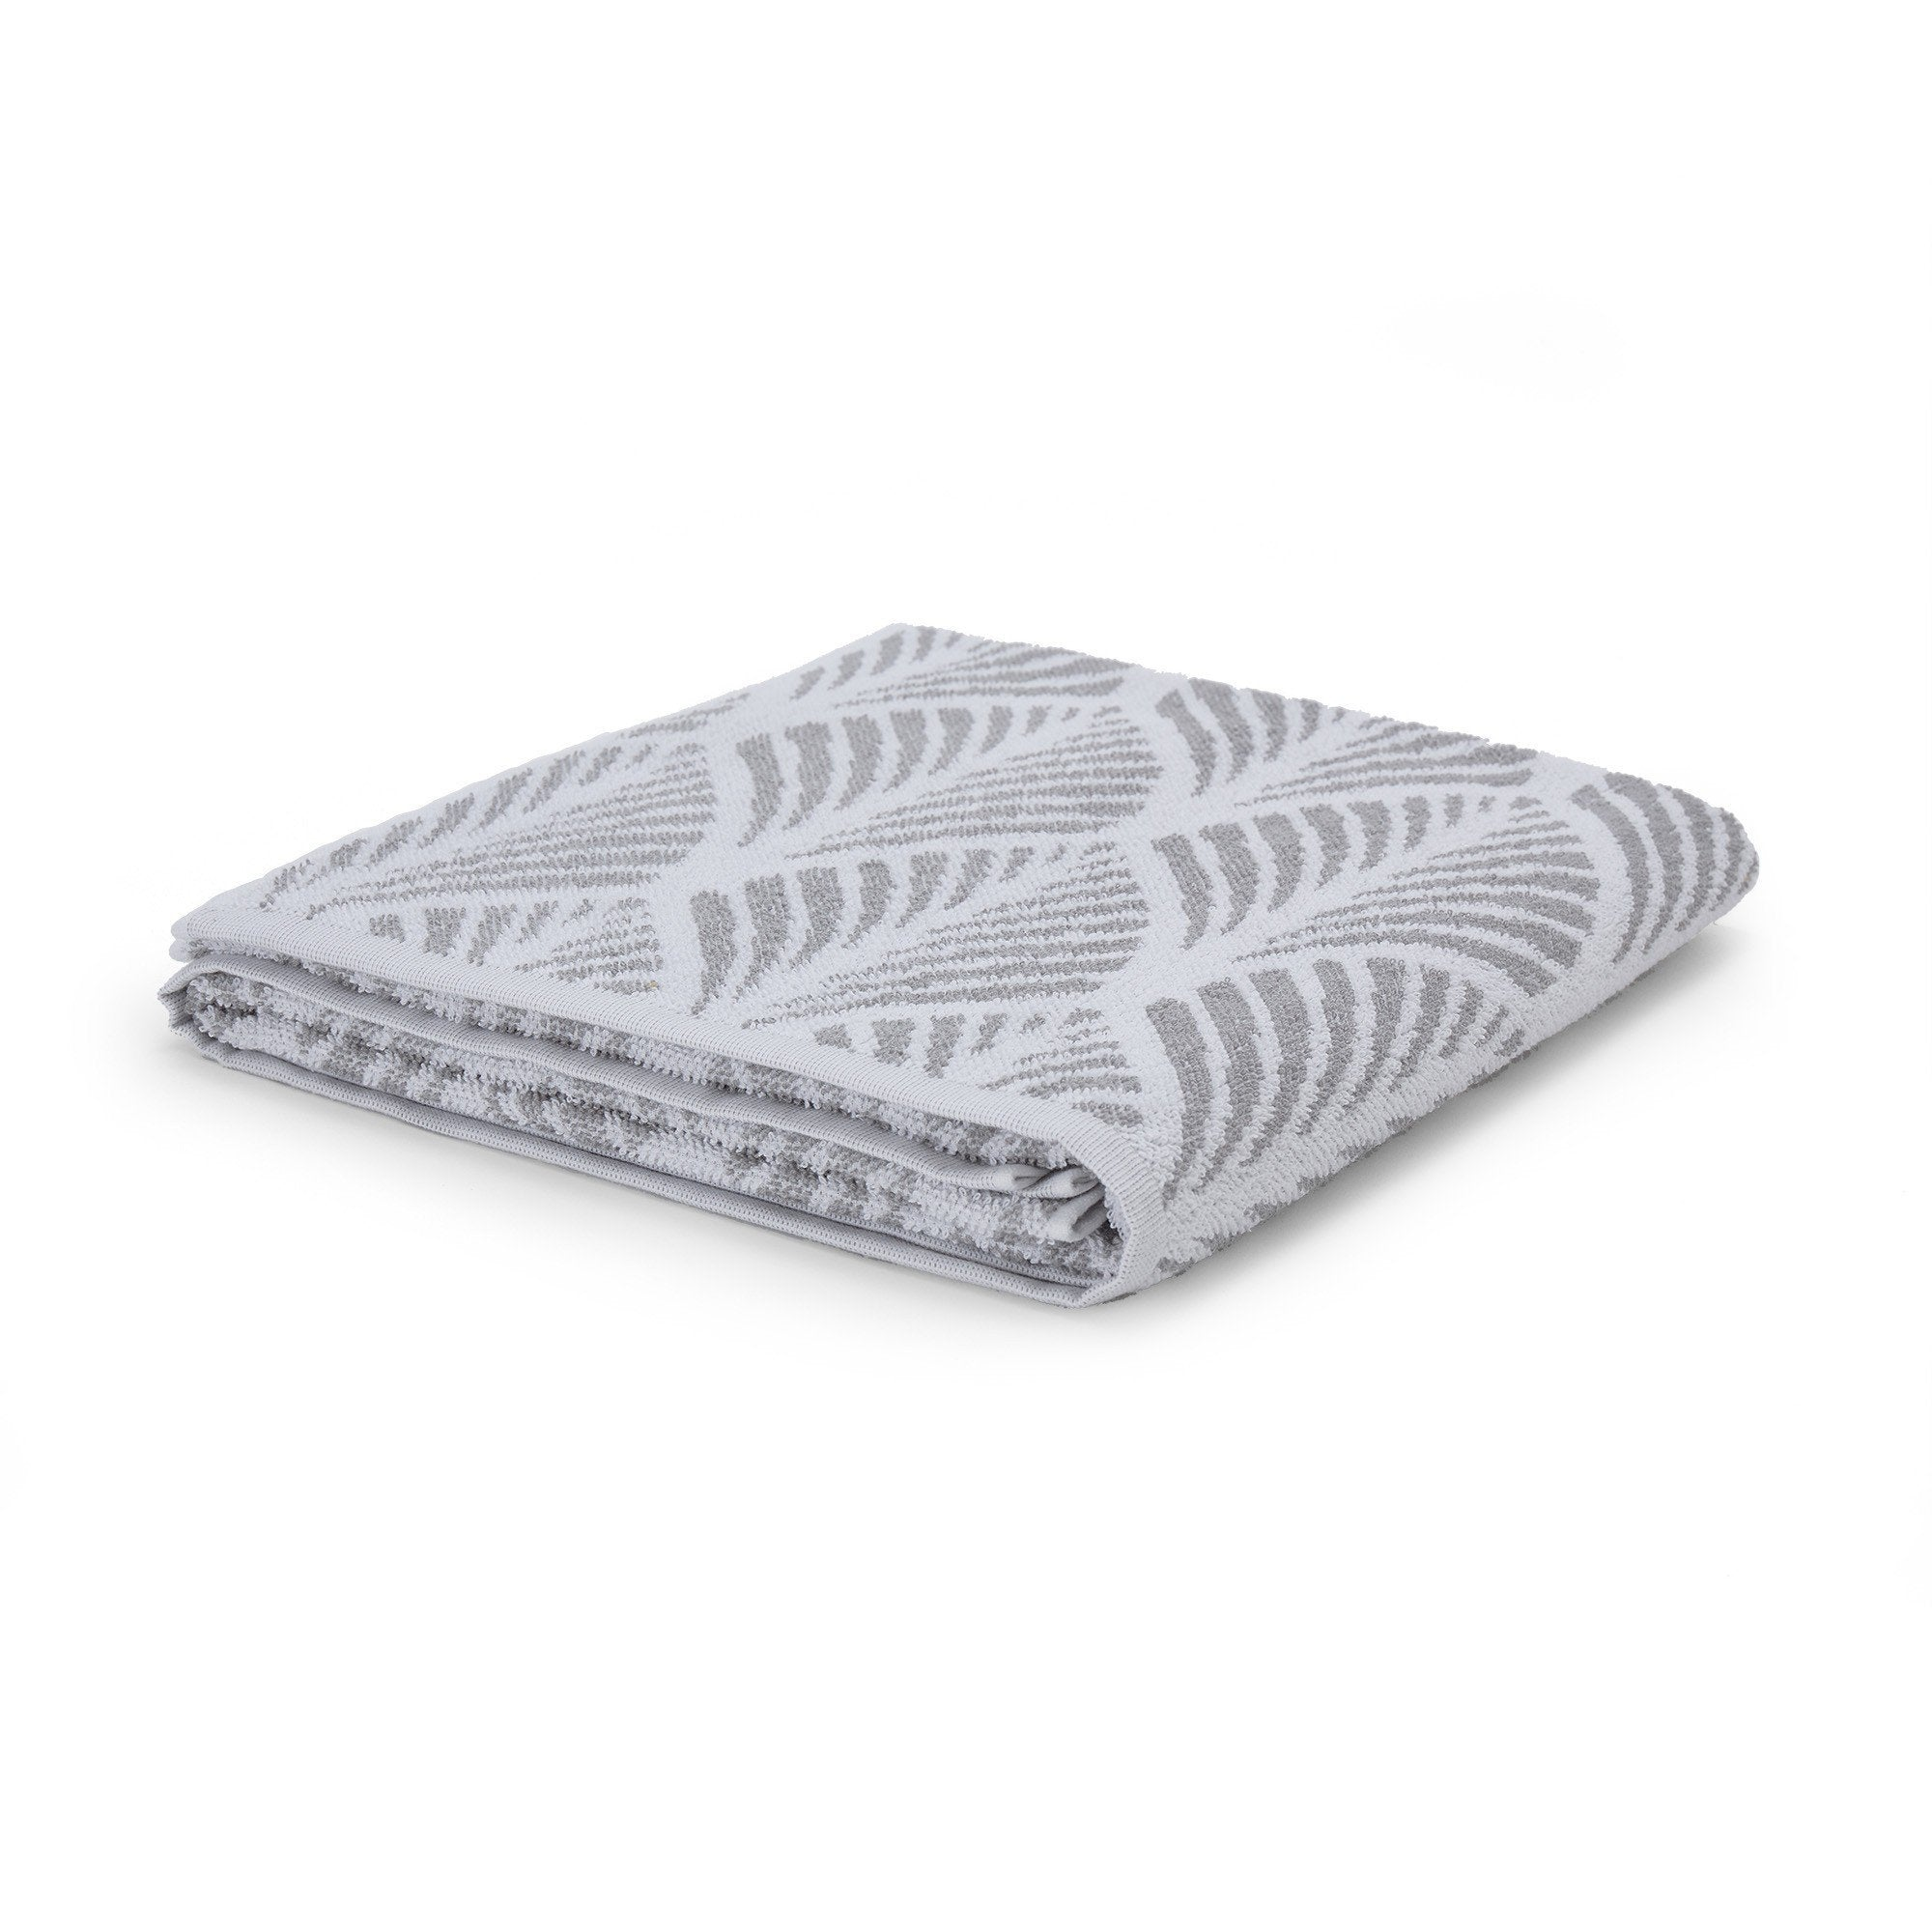 Grey & White Coimbra Handtuch | Home & Living inspiration | URBANARA